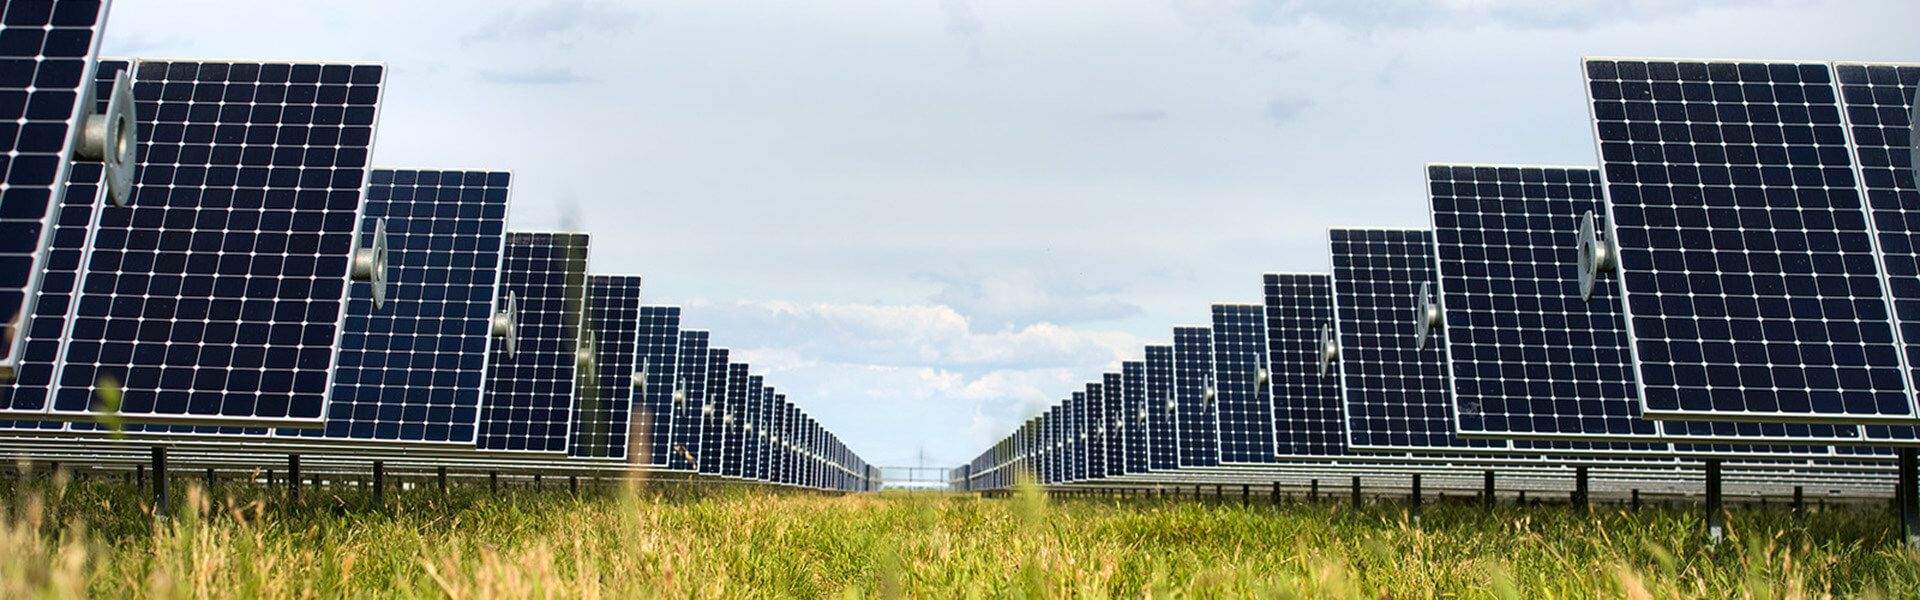 Sustainably Made Solar Panels